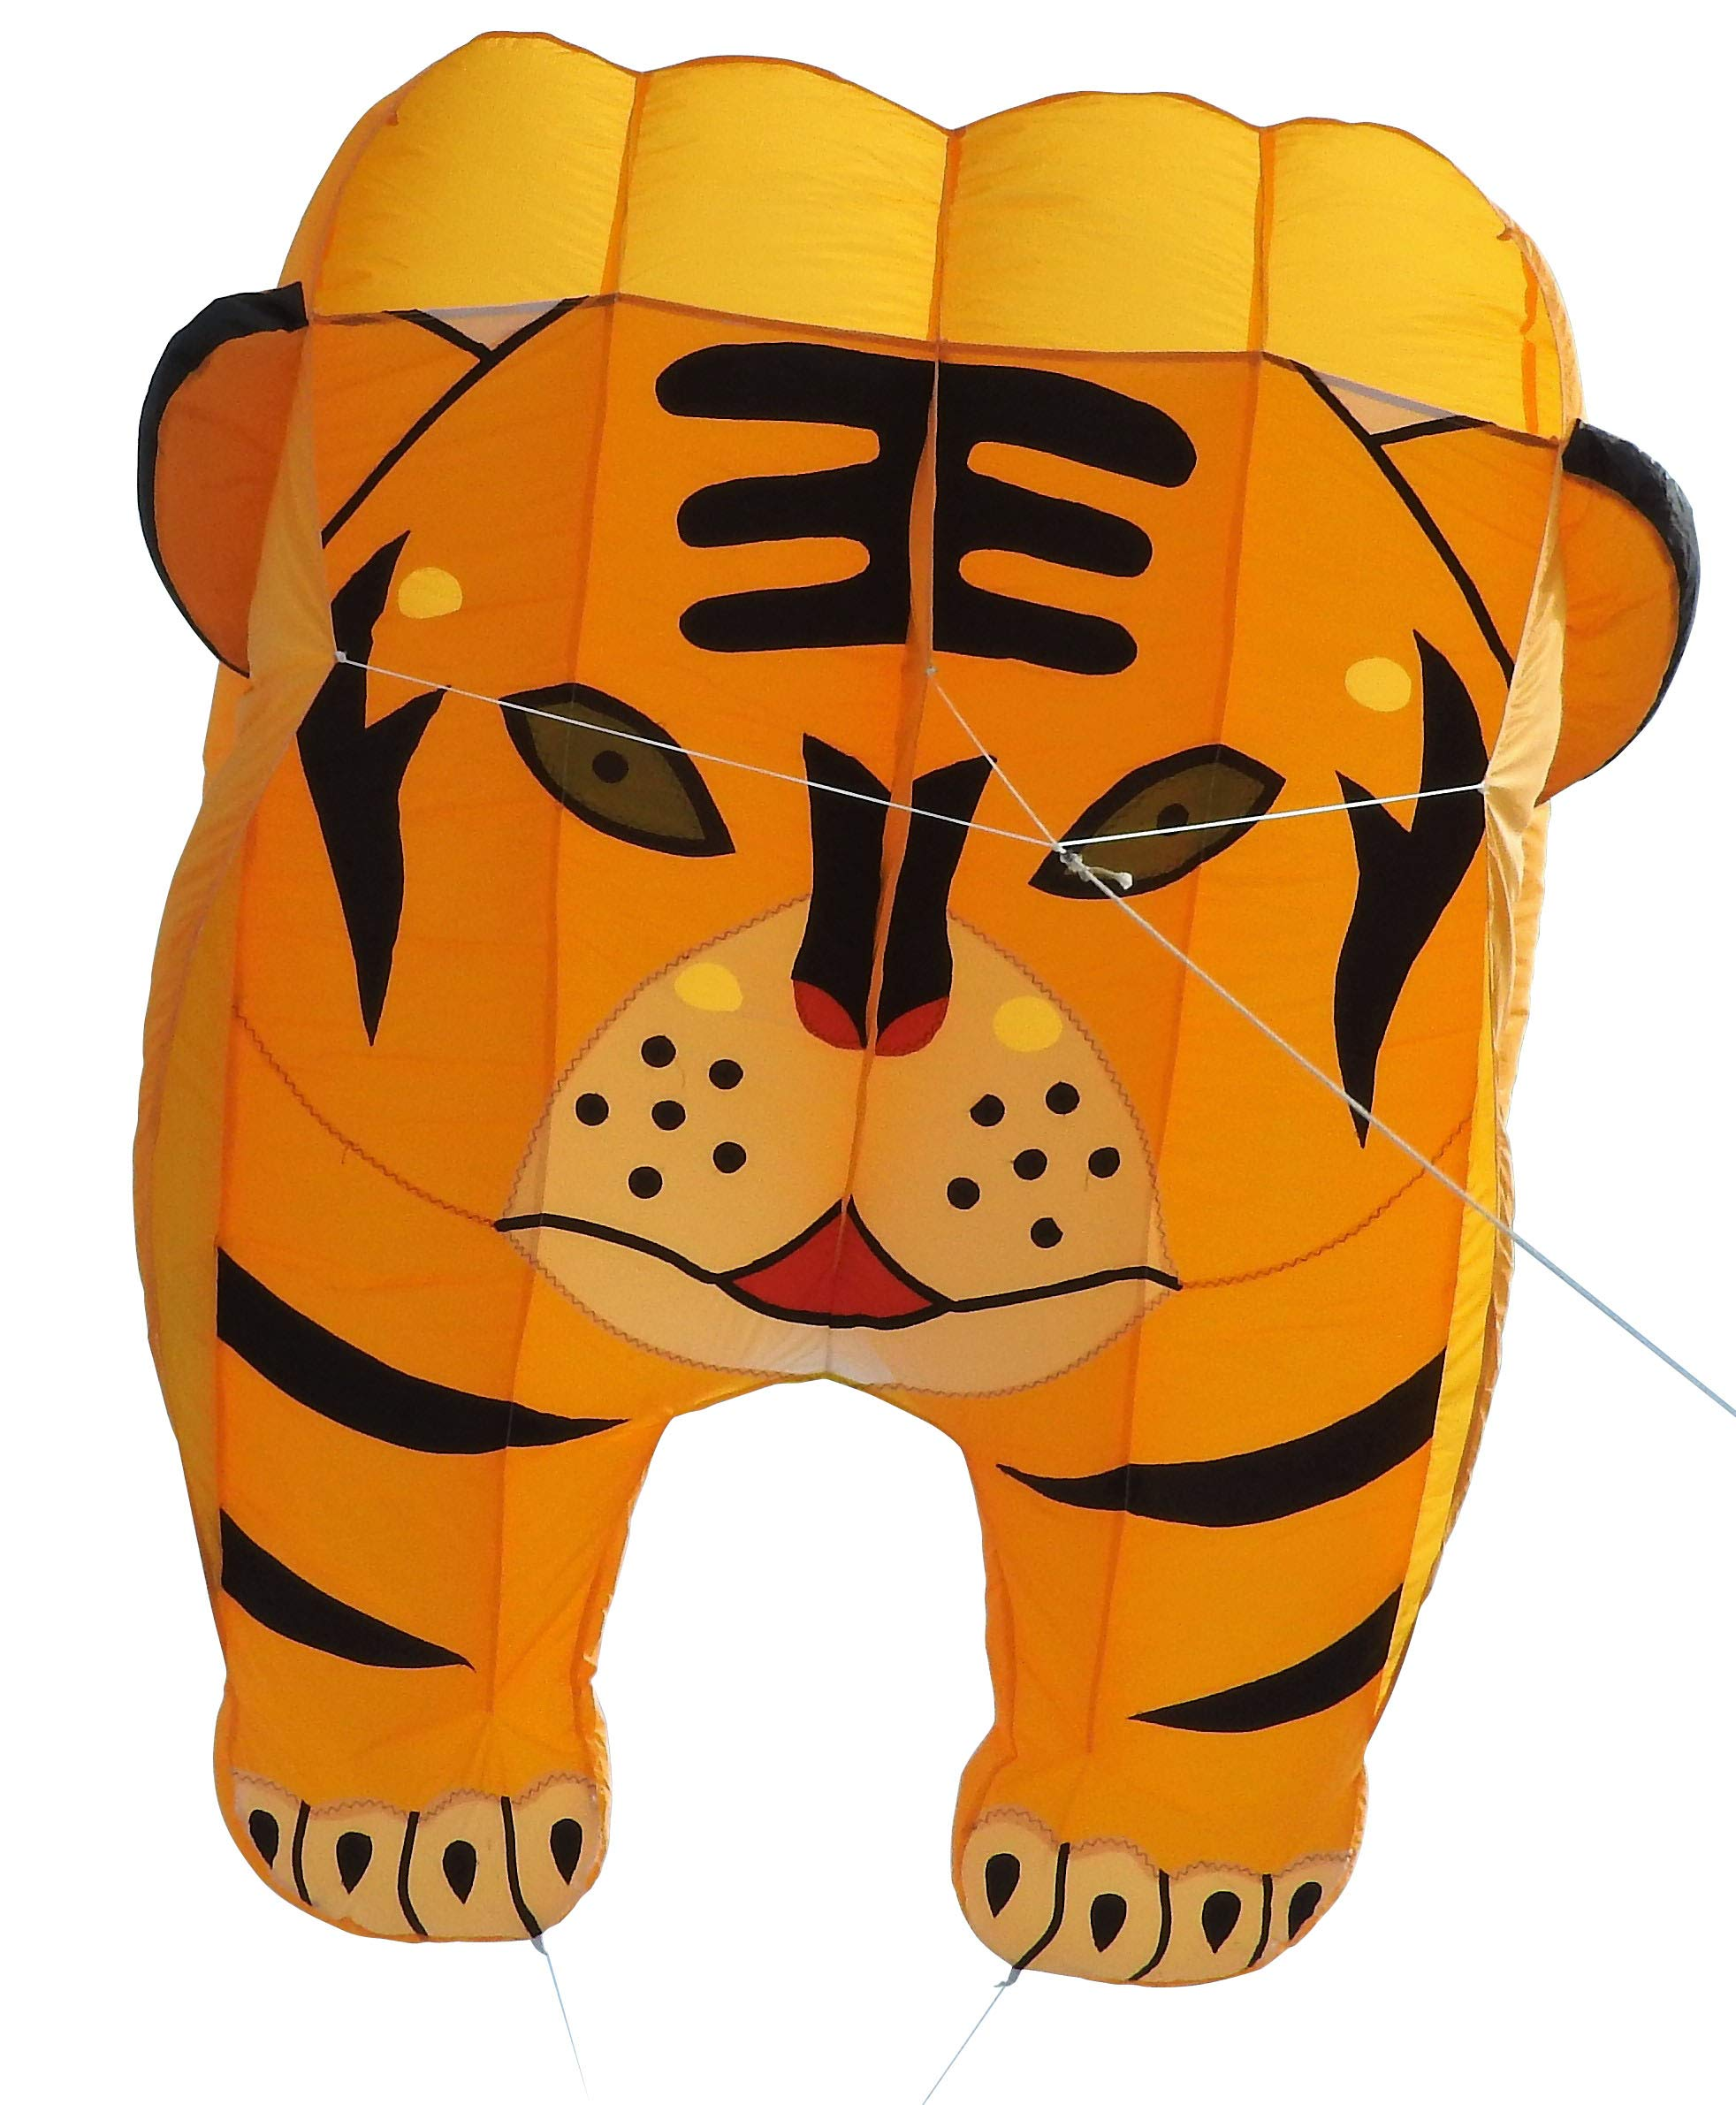 Fullfar Tiger 3D Kite for Adult, Soft Nylon Material Parafoil Kite for Kids. Easy to Fly 244×39 inch with Kite String and Backpack, Perfect Kite for The Beach or Park.